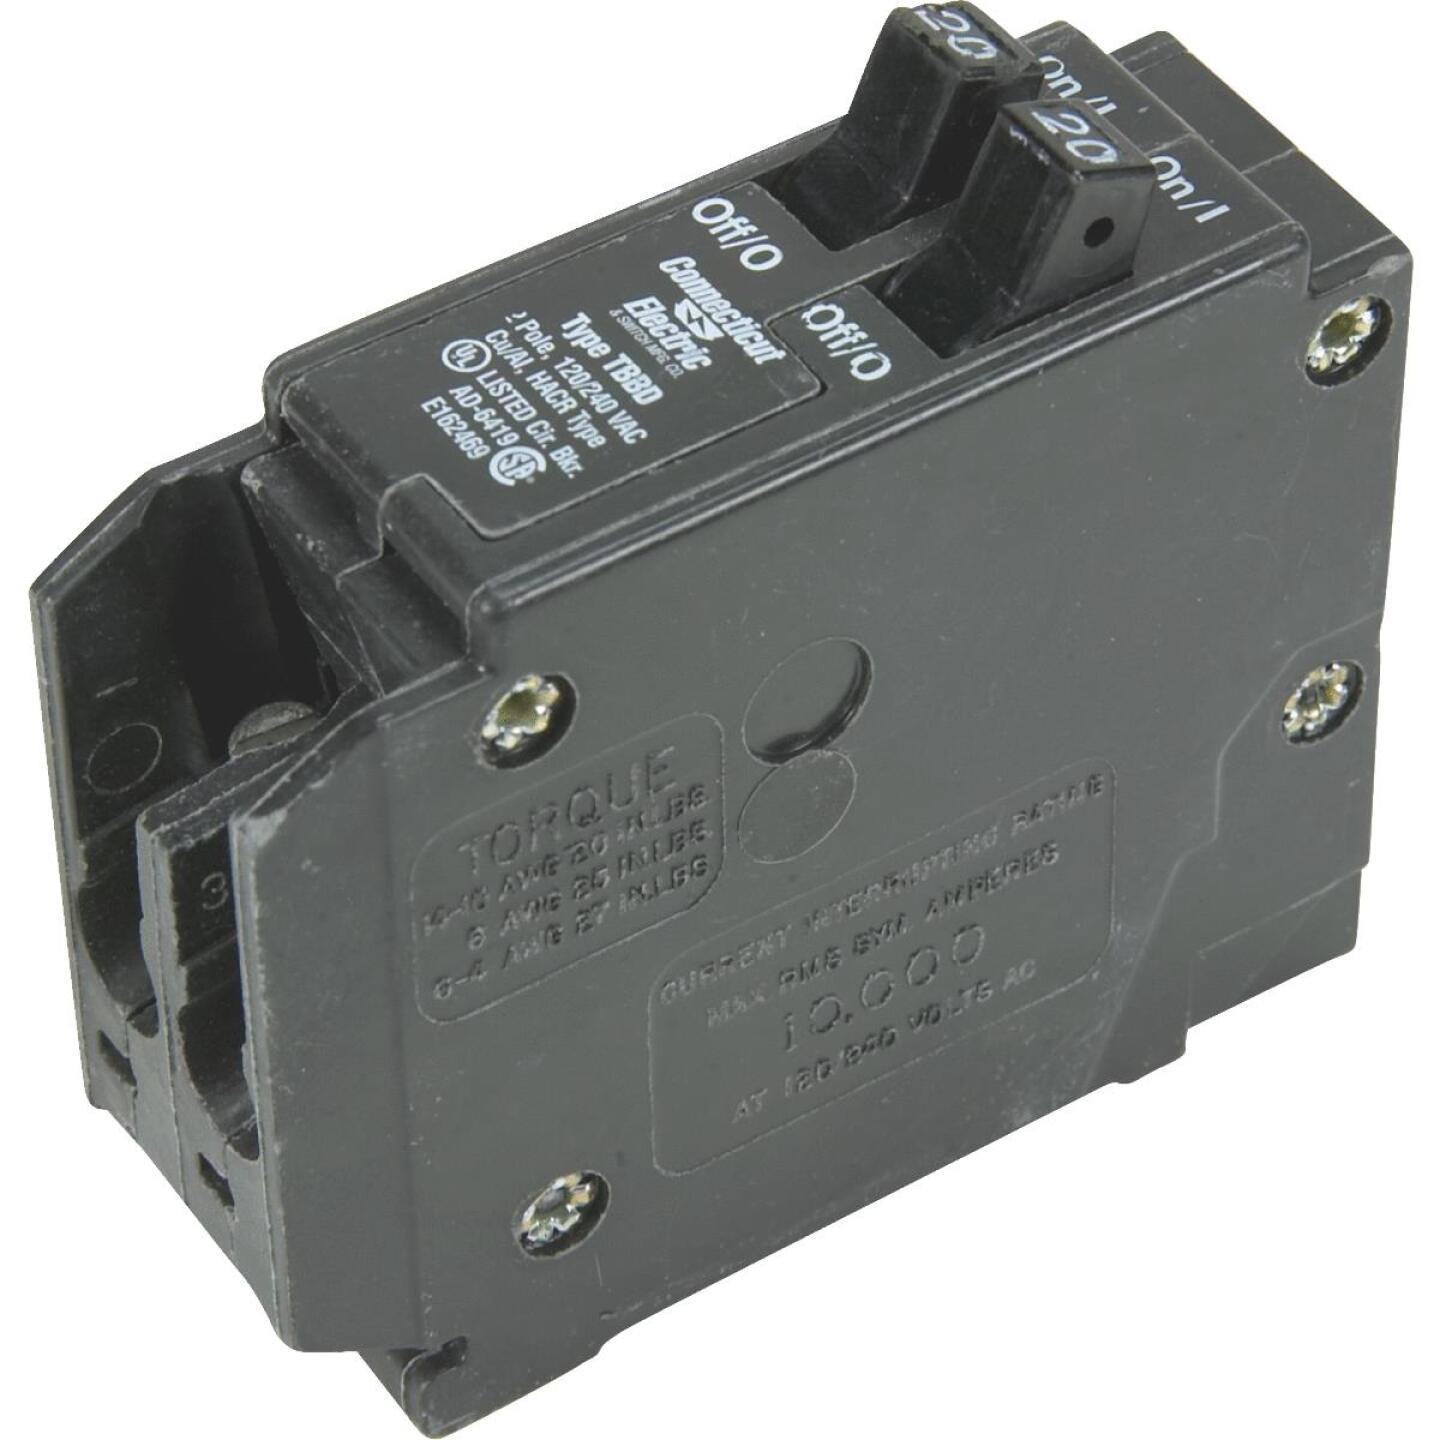 Connecticut Electric 20A/20A Twin Single-Pole Standard Trip Interchangeable Packaged Circuit Breaker Image 1